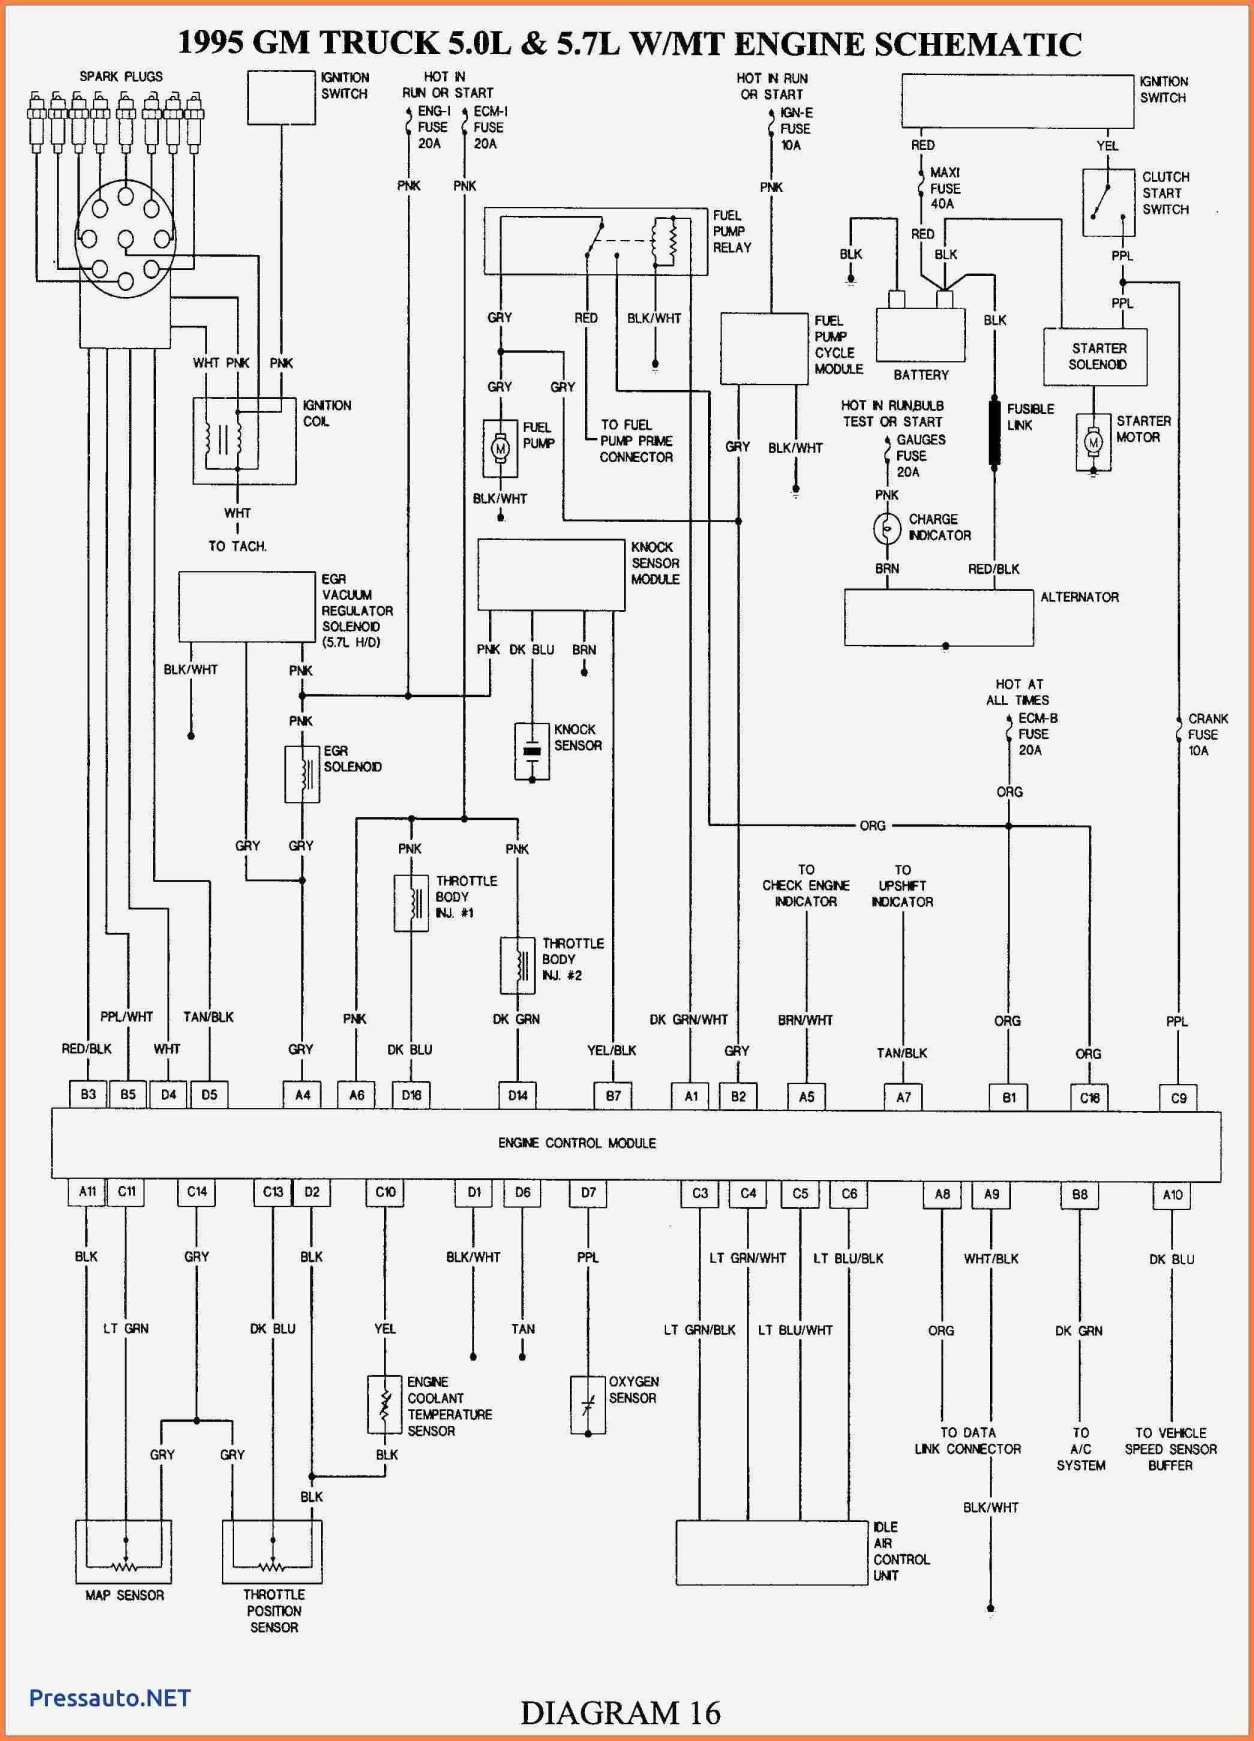 17+ 2002 chevy truck wiring diagram - truck diagram - wiringg.net in 2020 |  chevy trucks, chevy 1500, electrical diagram  pinterest